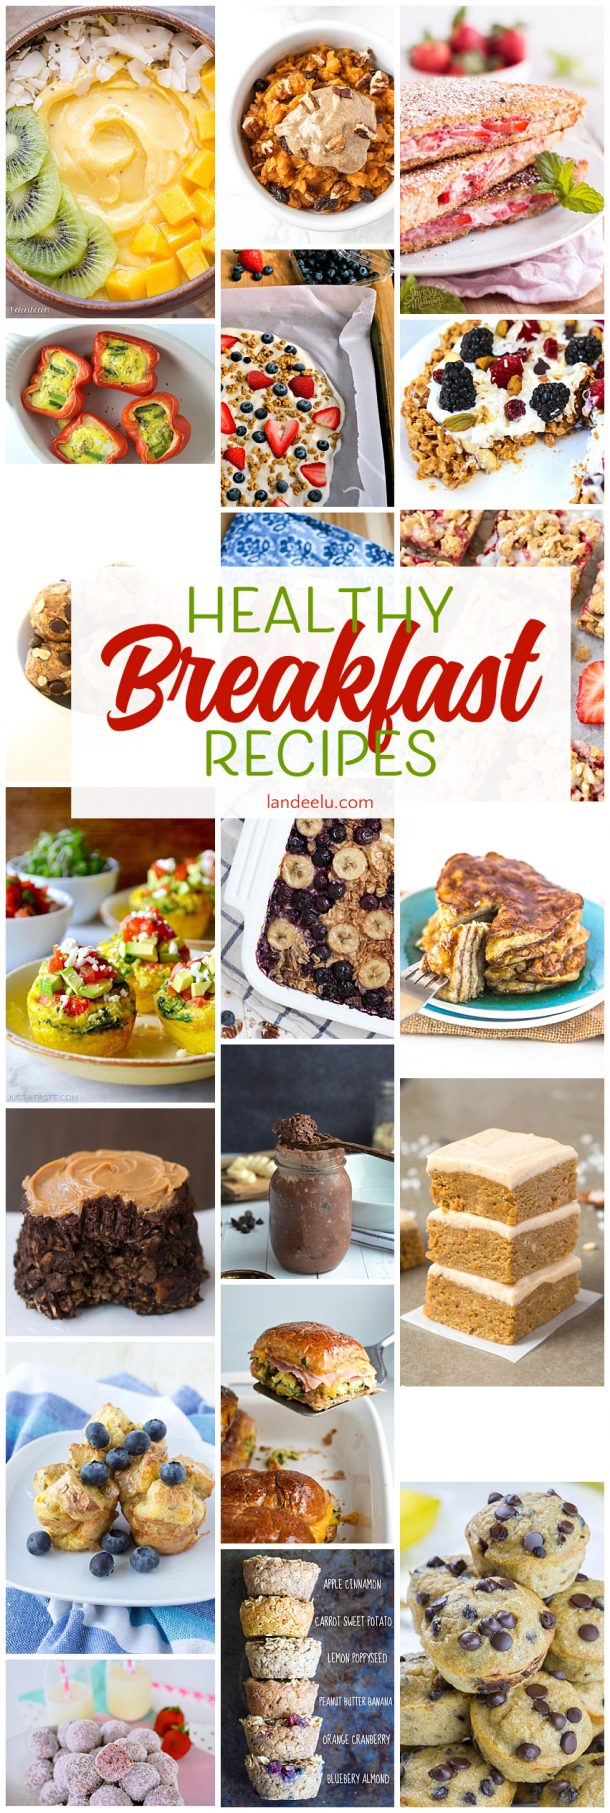 Are you looking to start your day off right with some yummy AND healthy breakfast options? Here are 20 recipes to try! Pack as many nutrients into your morning meal as possible!